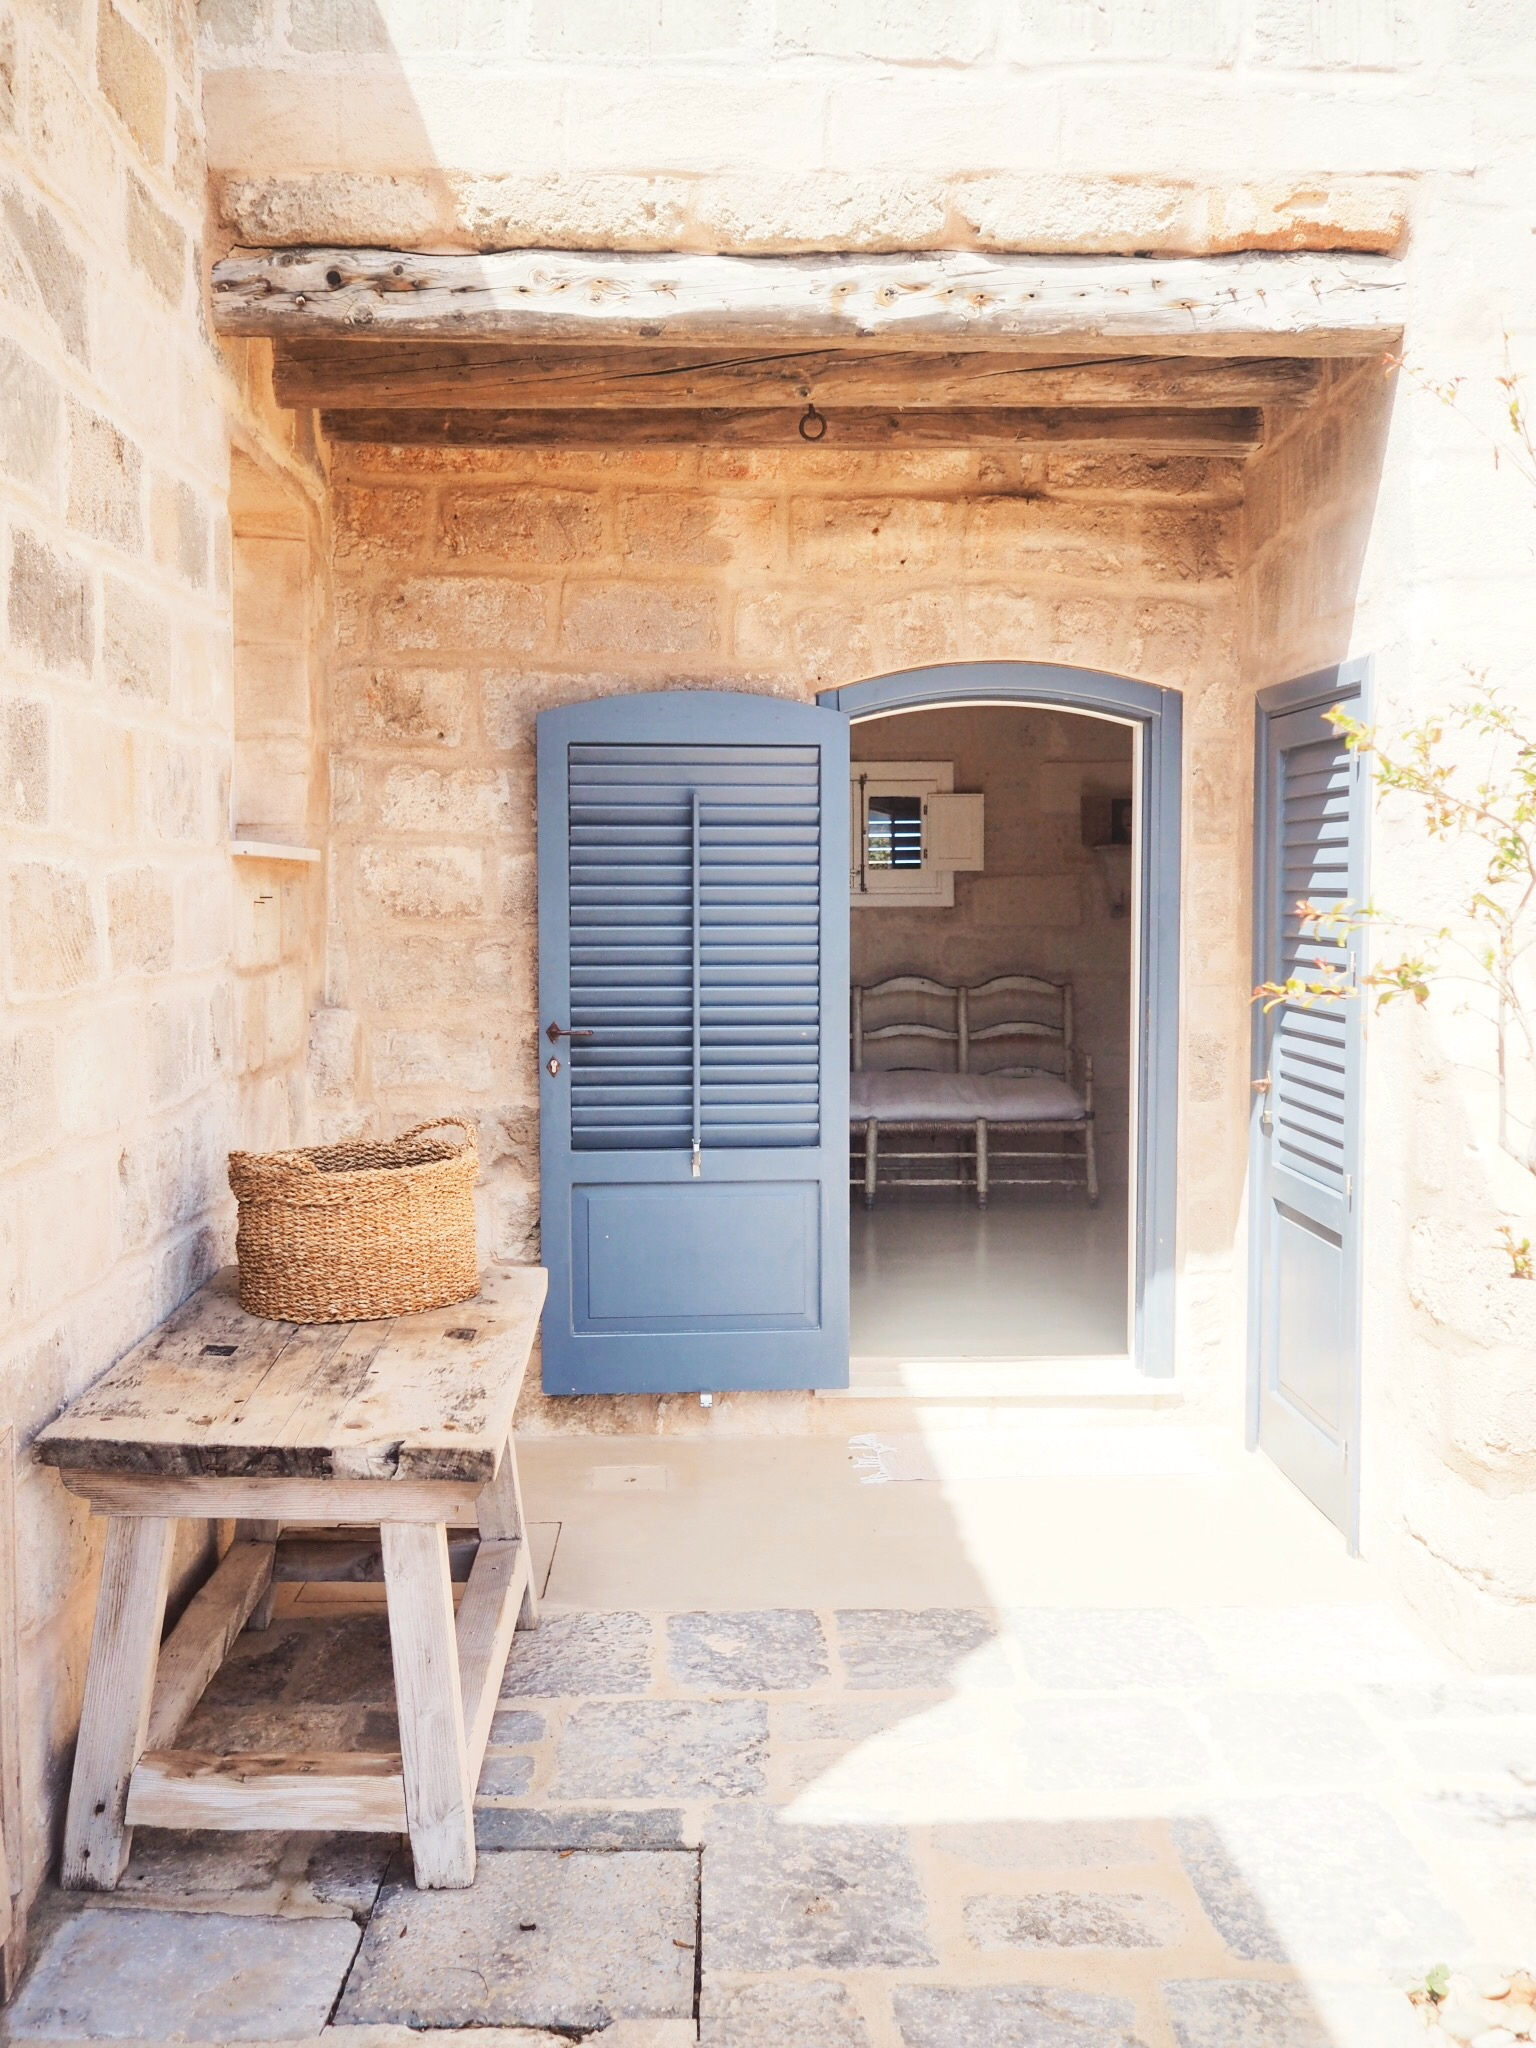 Where to stay in Favignana, Sicily